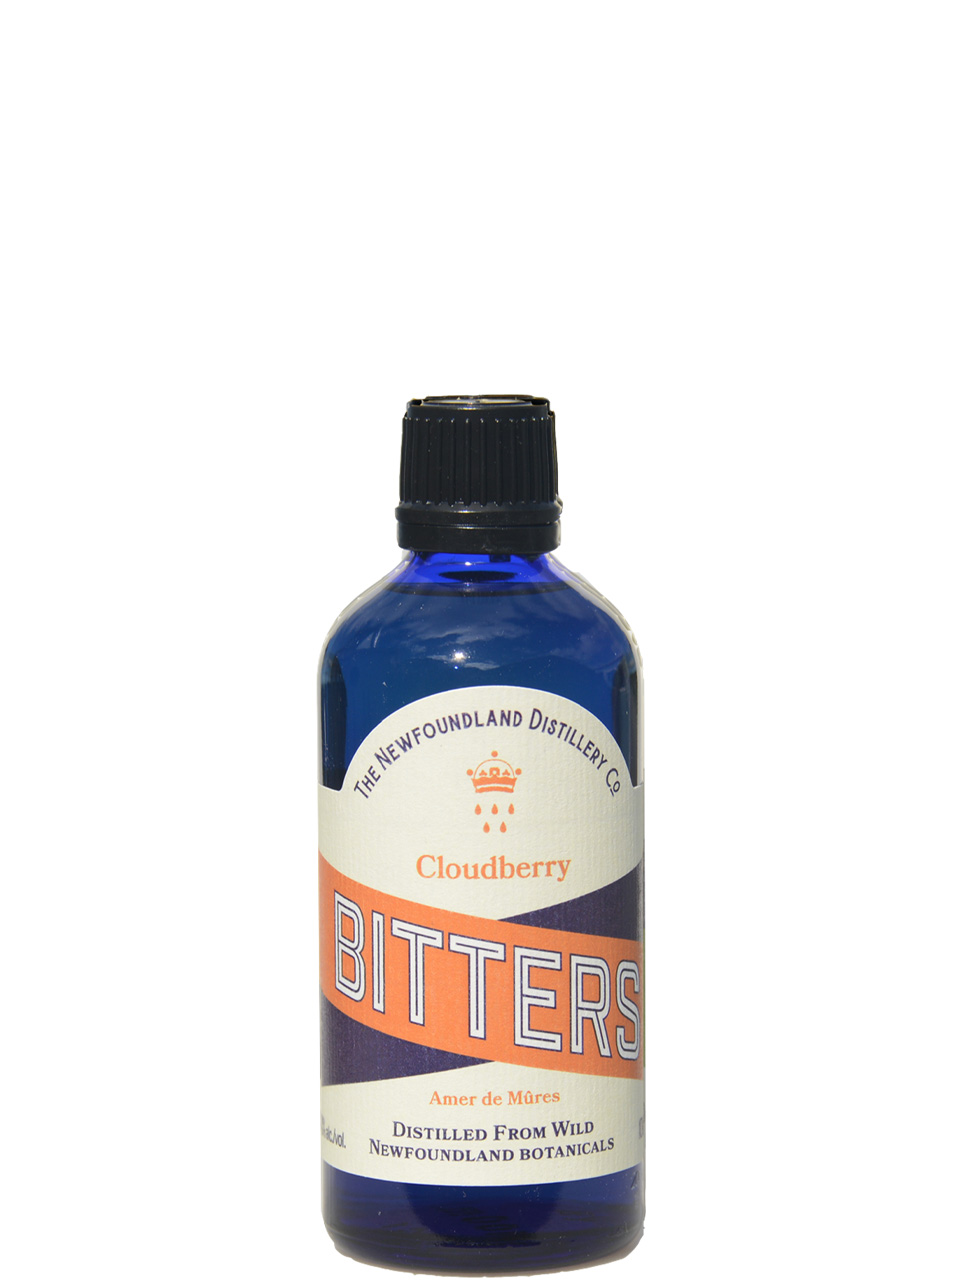 The Newfoundland Distillery Co. Cloudberry Bitters